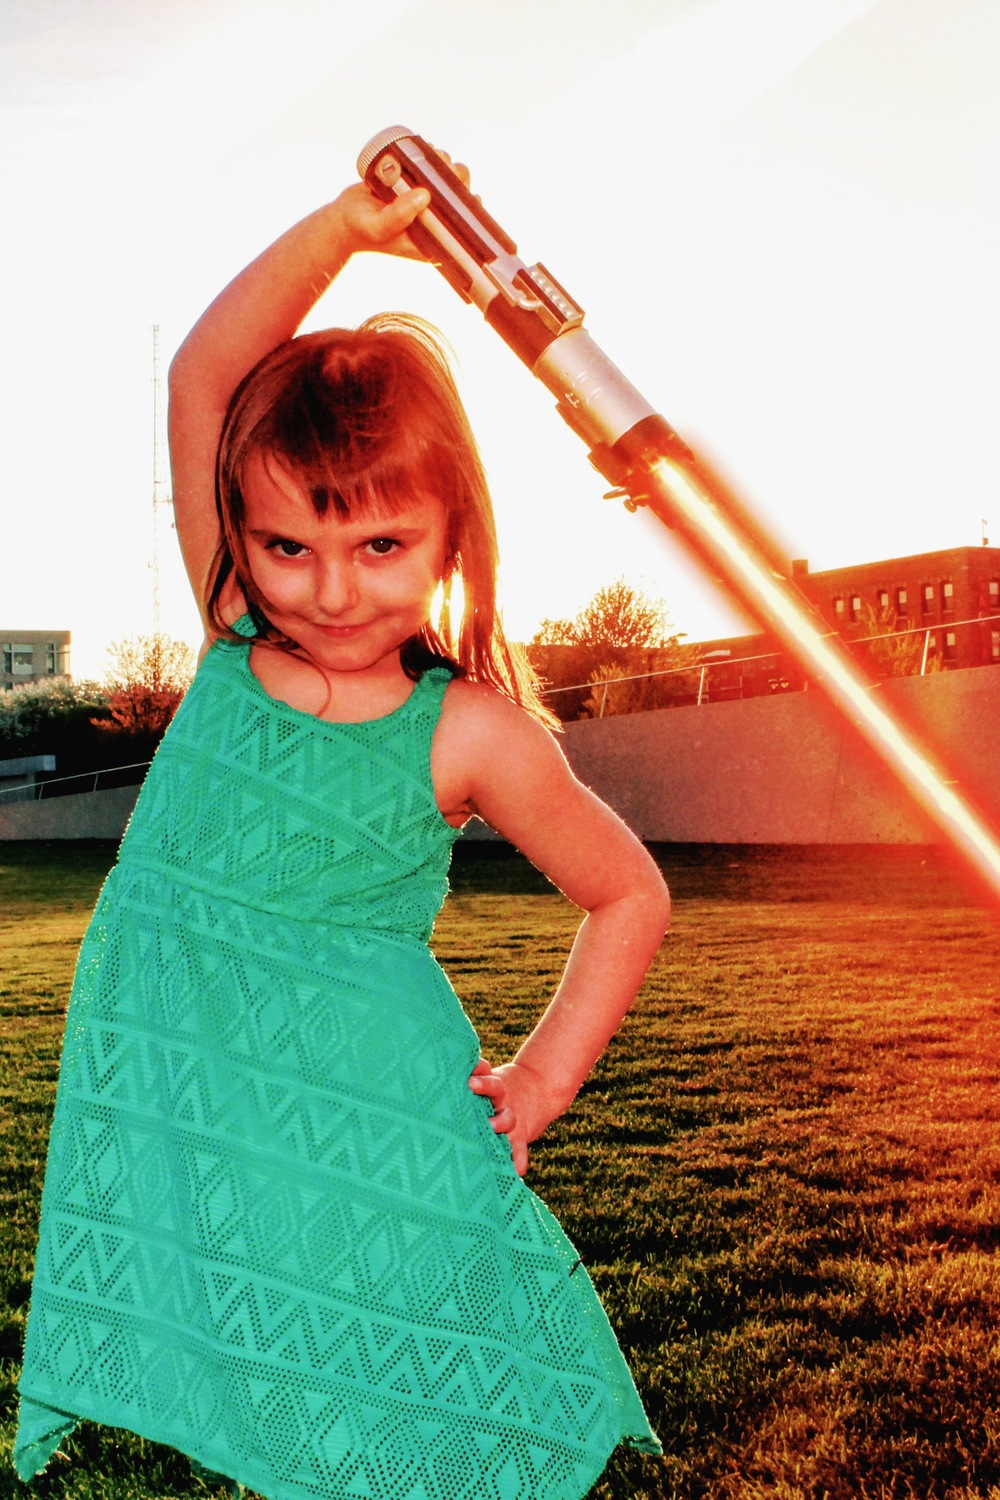 Raina with lightsaber